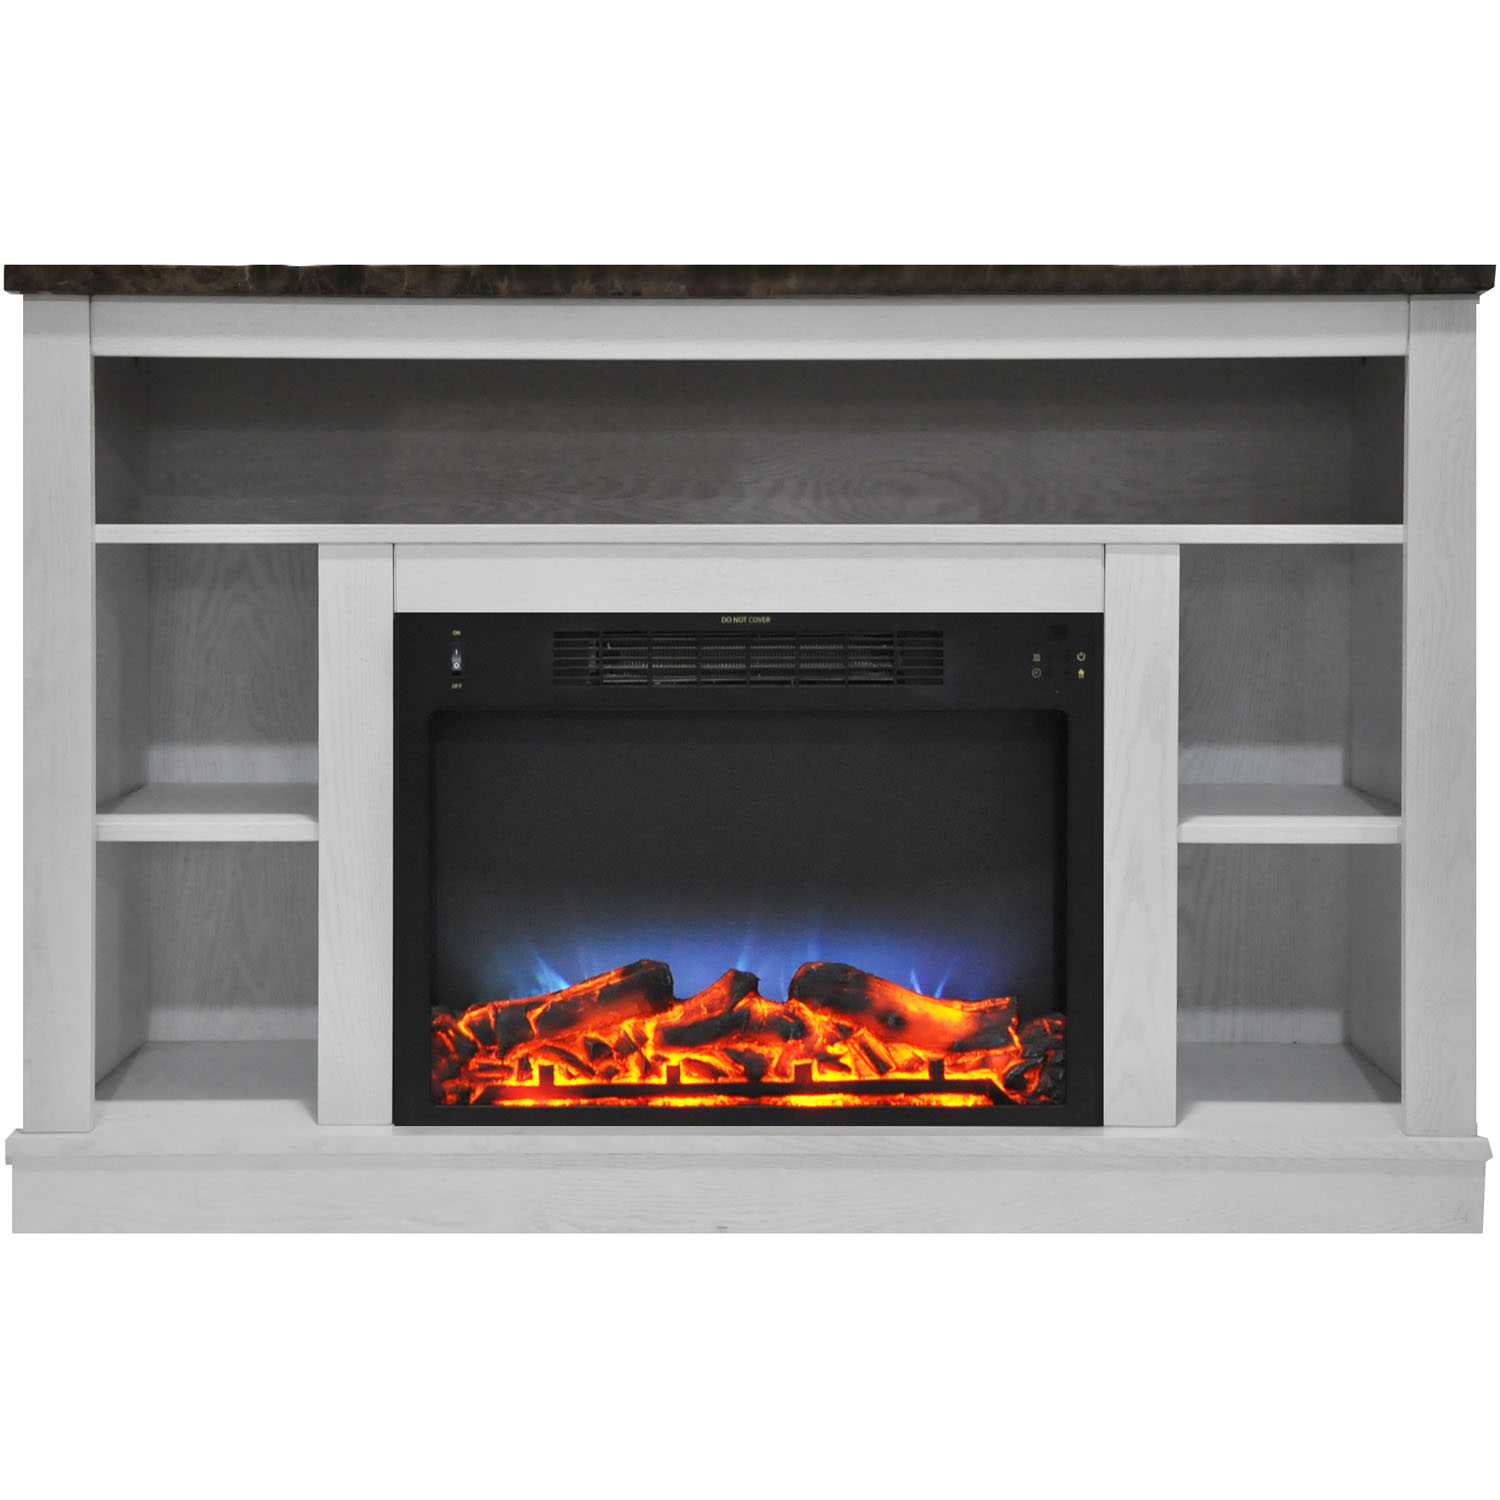 "Cambridge Seville 47"" Electric Fireplace Mantel Heater with Multi-Color LED Flame Display"